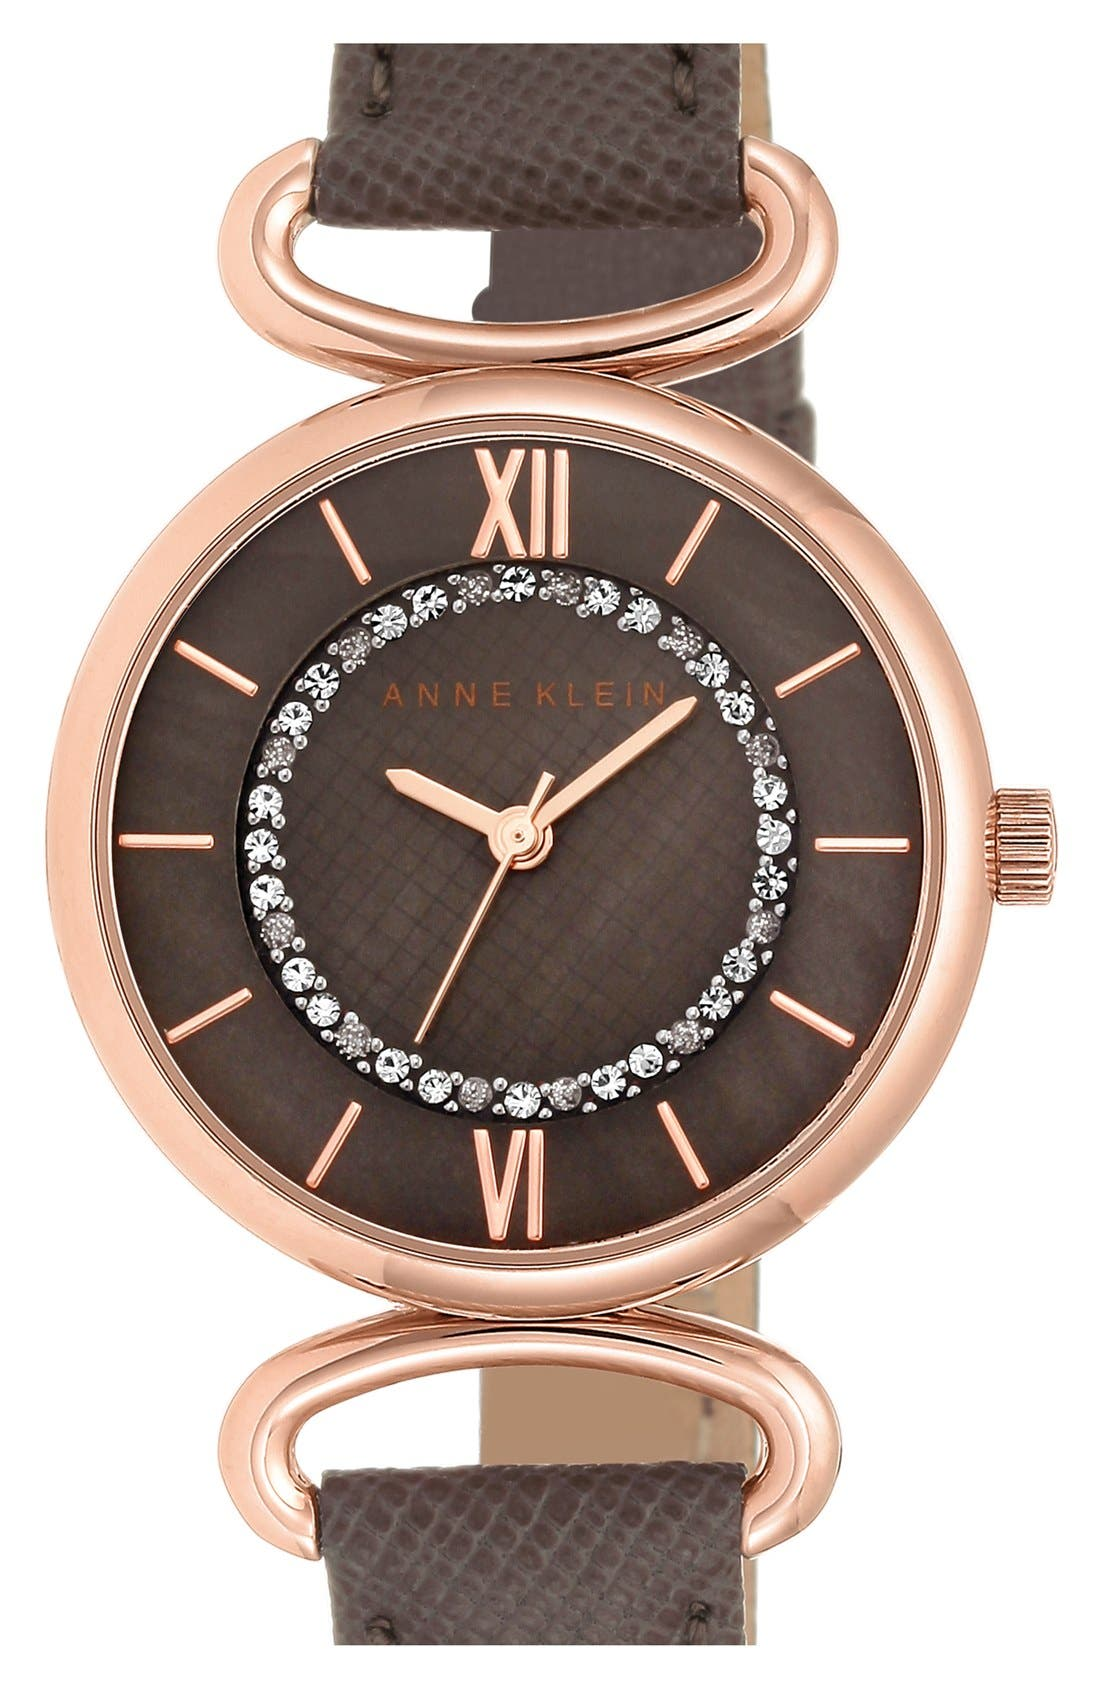 ANNE KLEIN, Leather Strap Watch, 32mm, Main thumbnail 1, color, 250